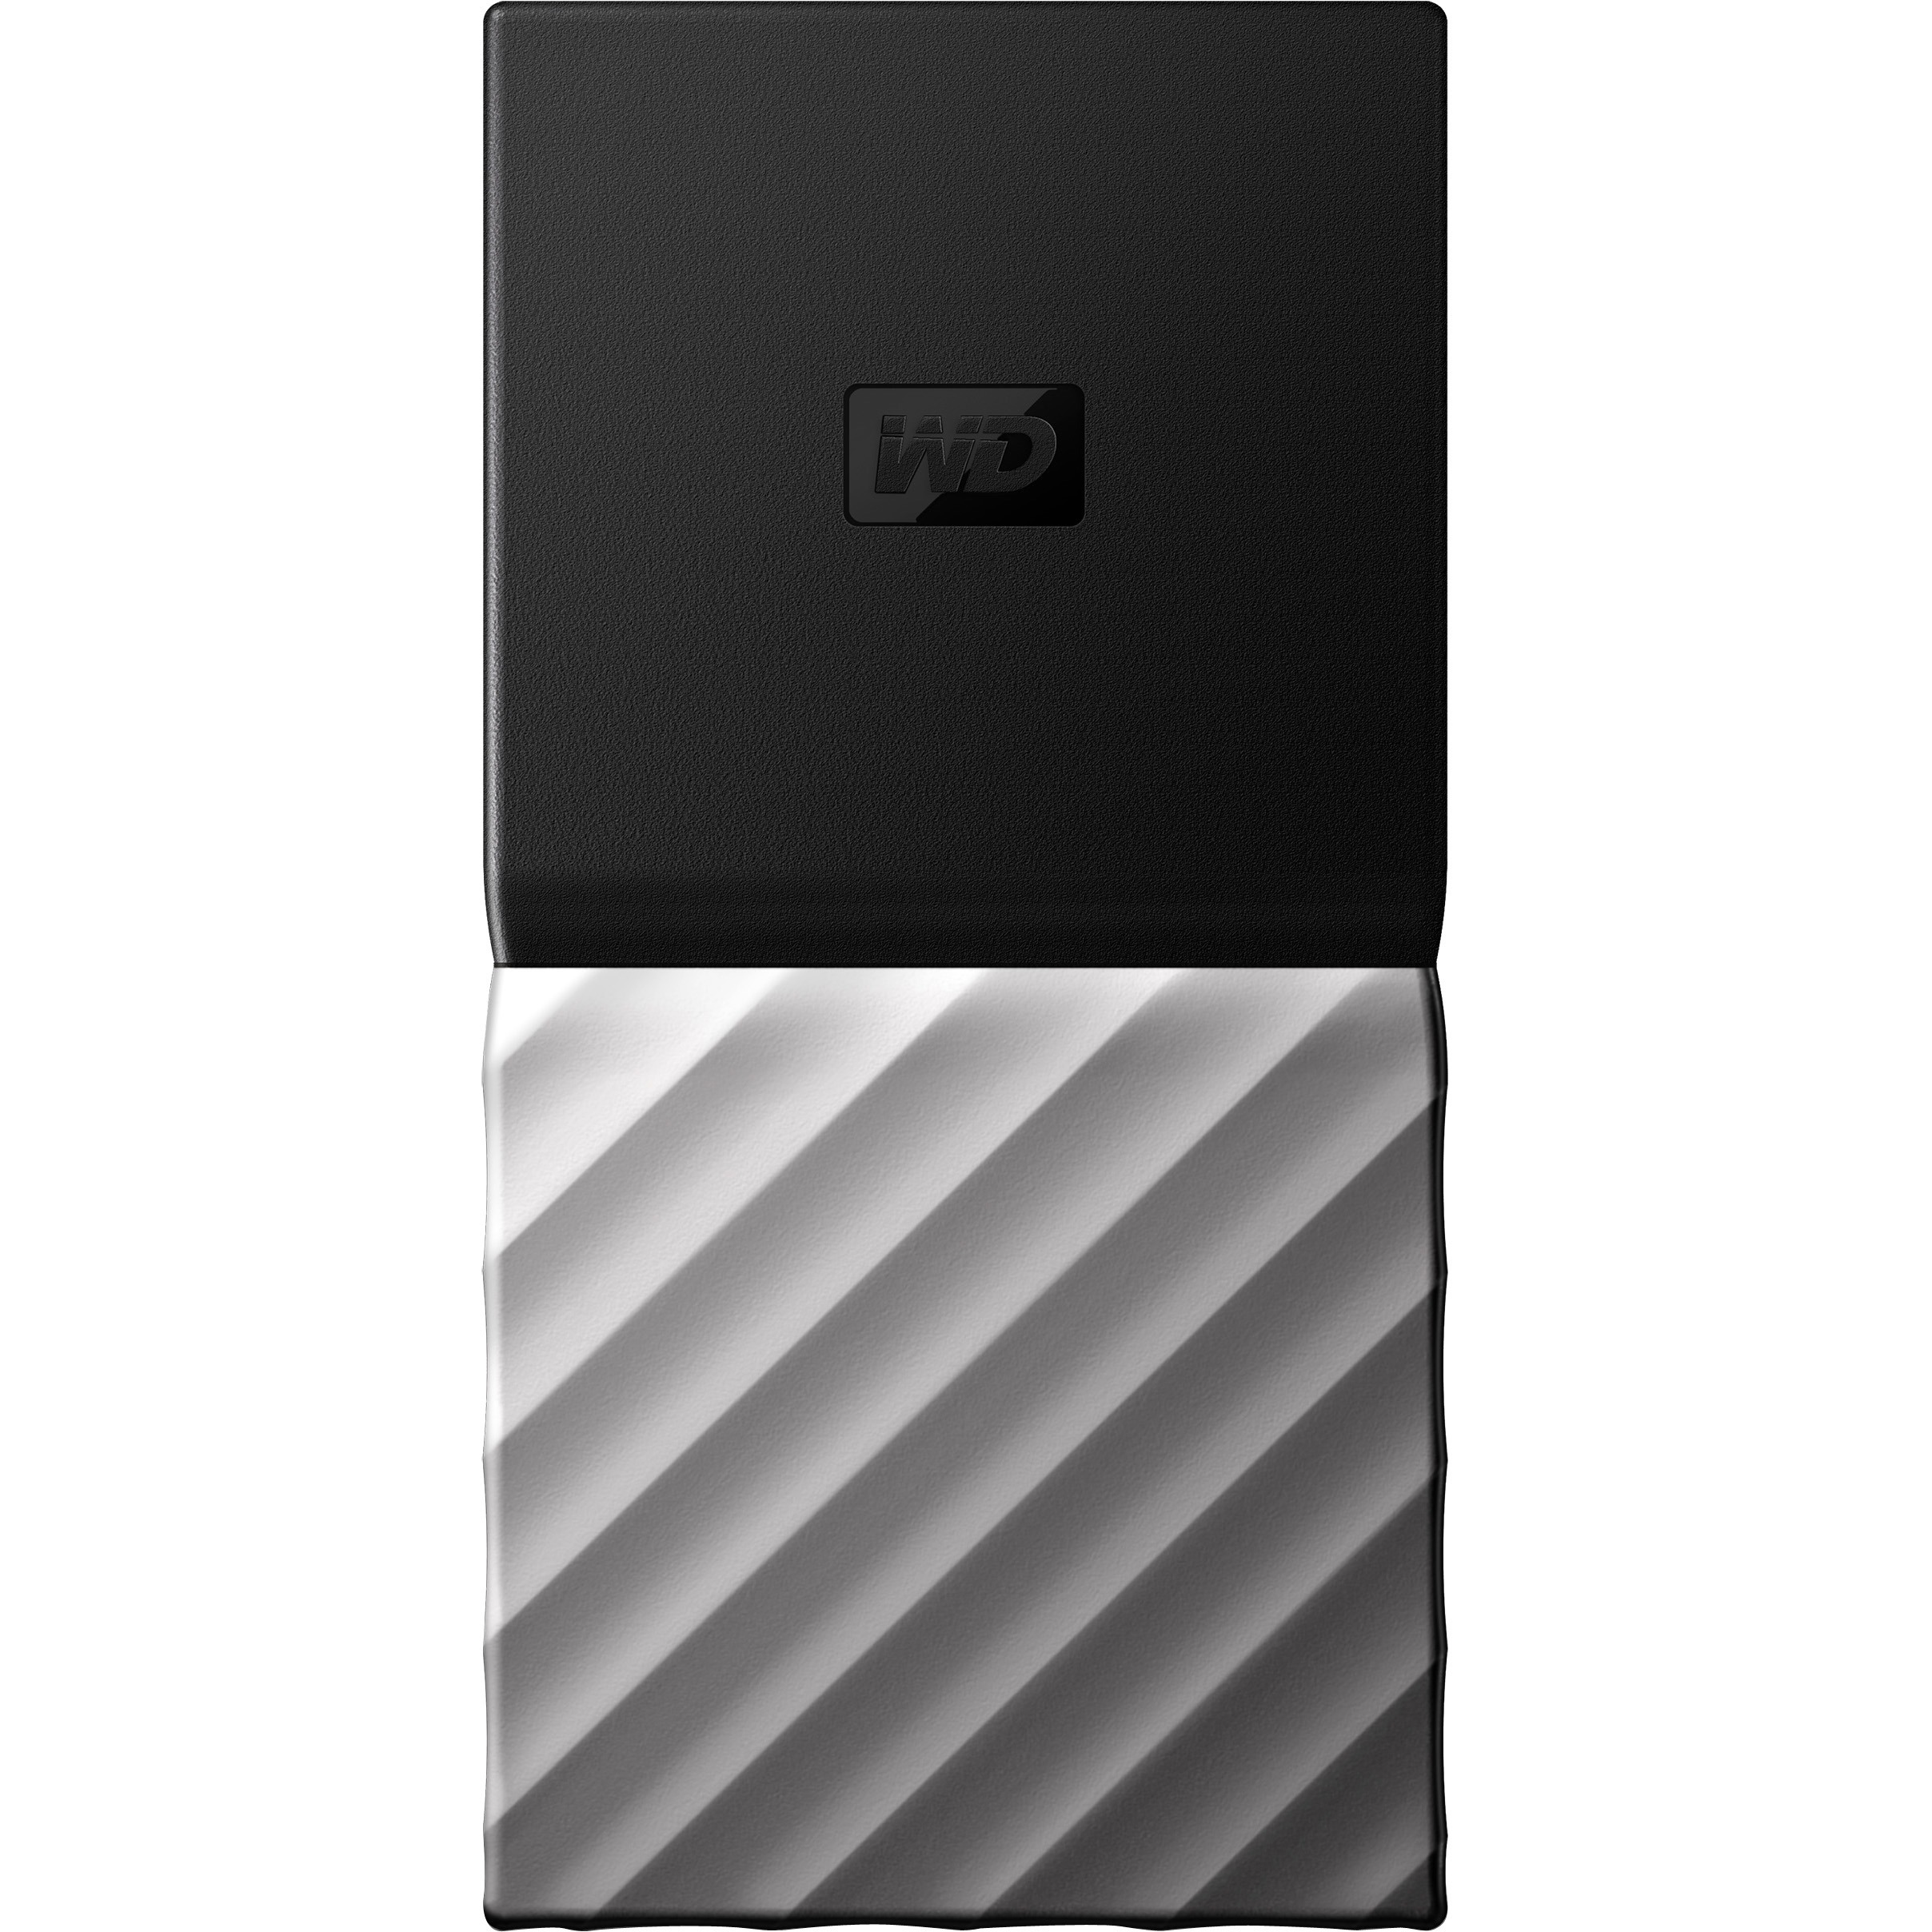 WD MY PASSPORT SSD - 512 GB Portable Drive